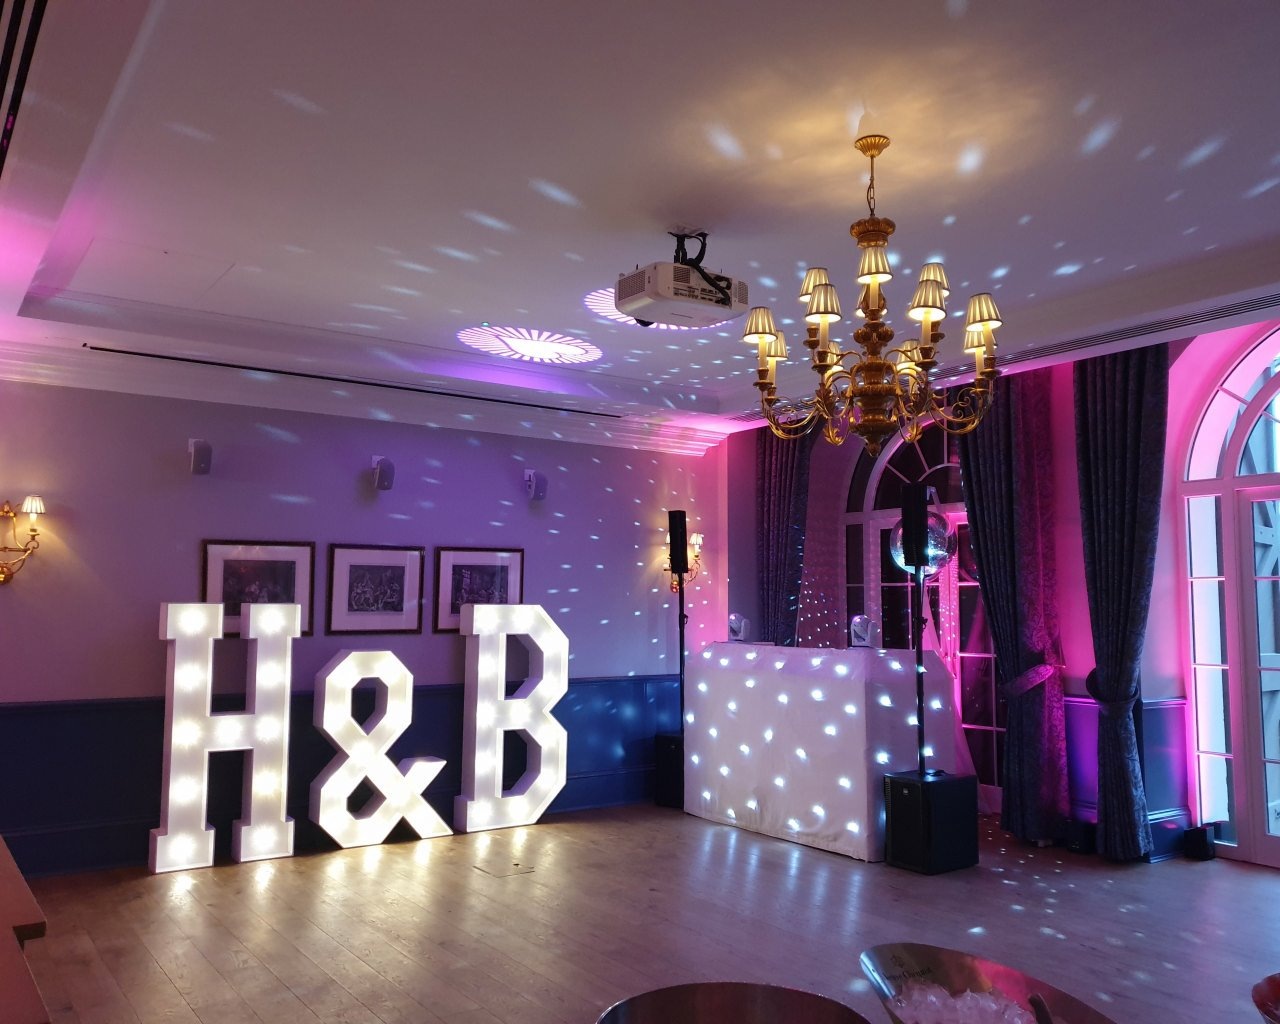 DJ set up Disco Ball and large light up letters at a Cliveden House wedding